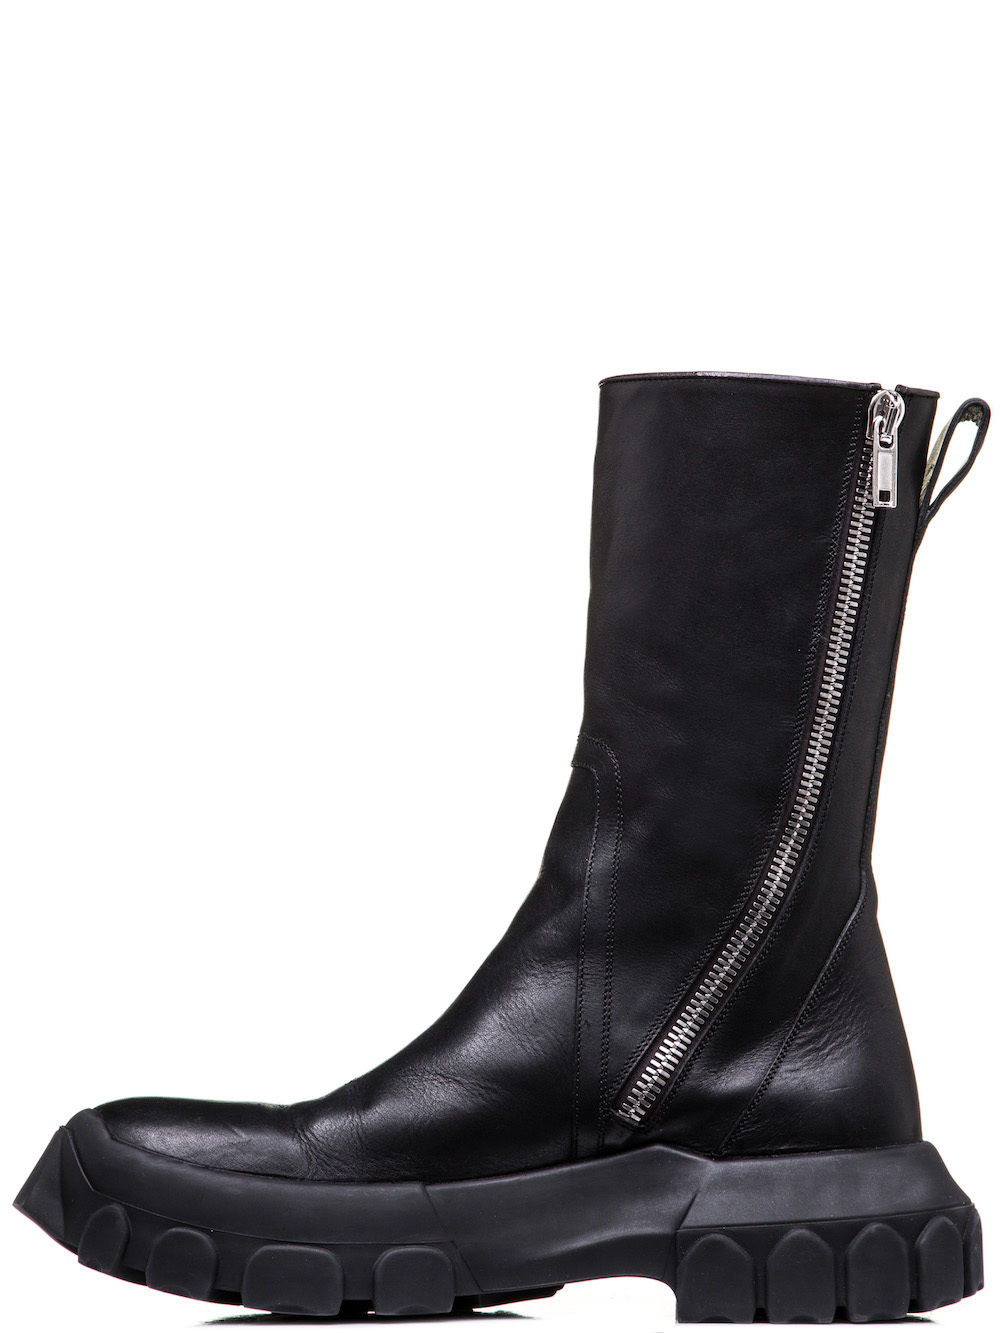 tractor zipped boots - Black Rick Owens dc3NSo